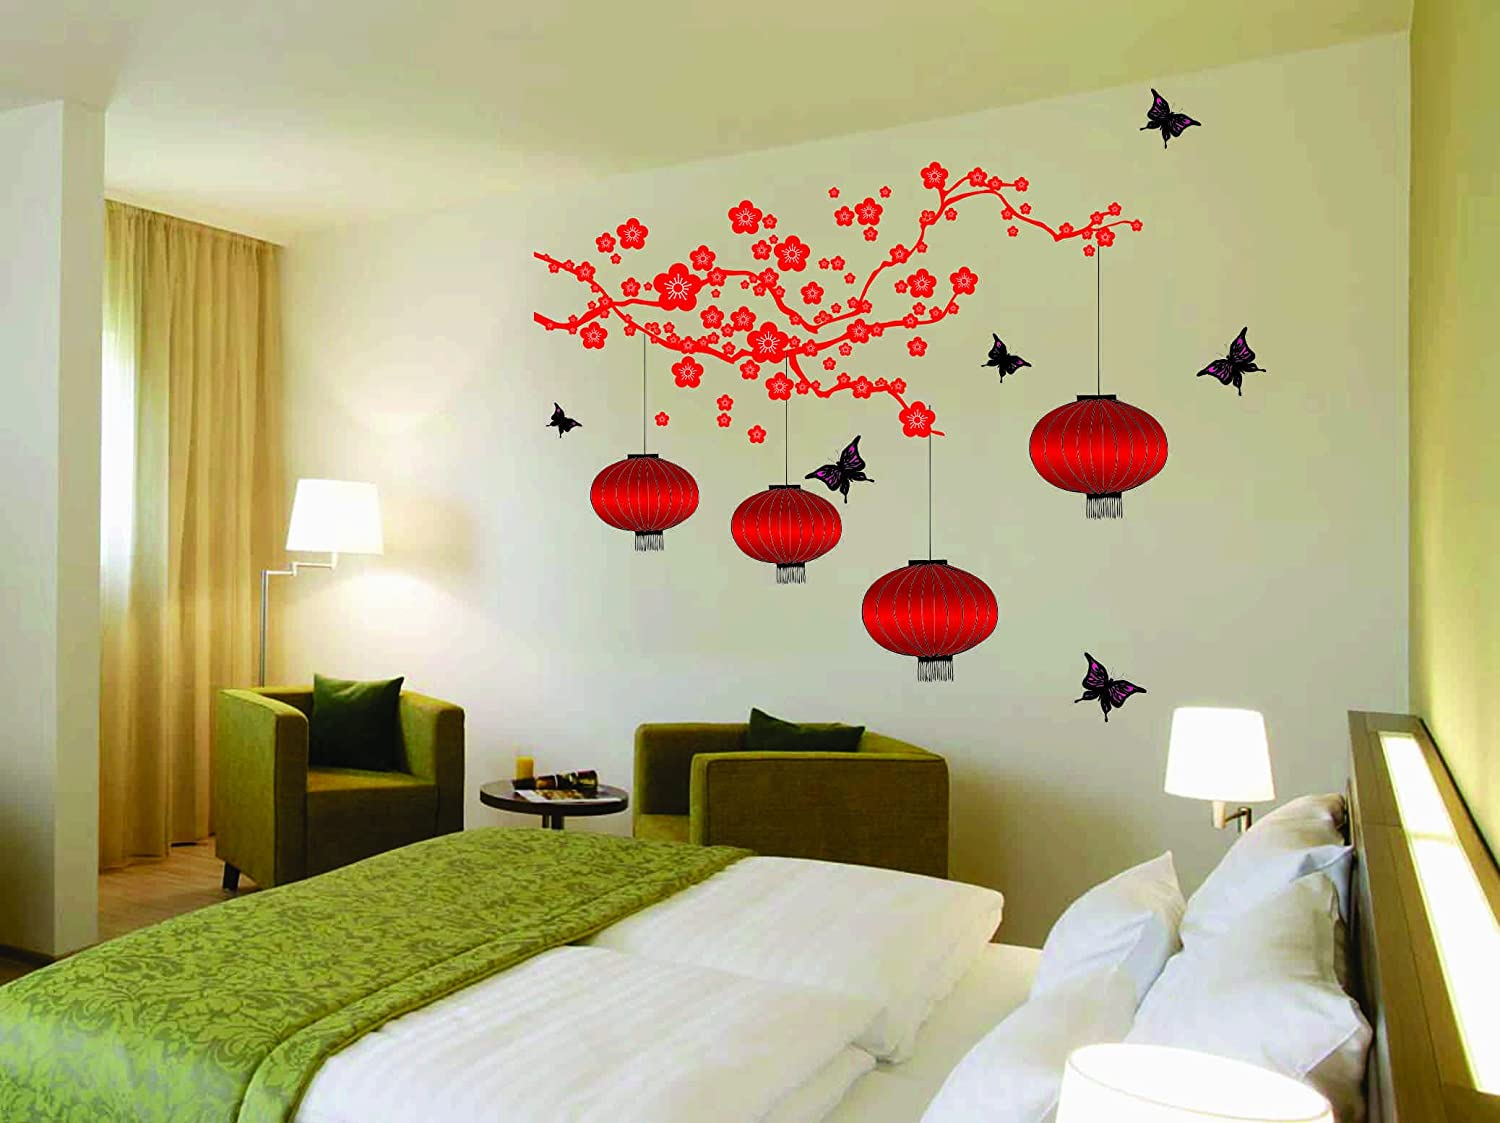 Buy happy walls chinese lanterns and lamps in attractive bright red wall coverage 150 cm h x 165 cm w in double sheet wall stickers decals 6980